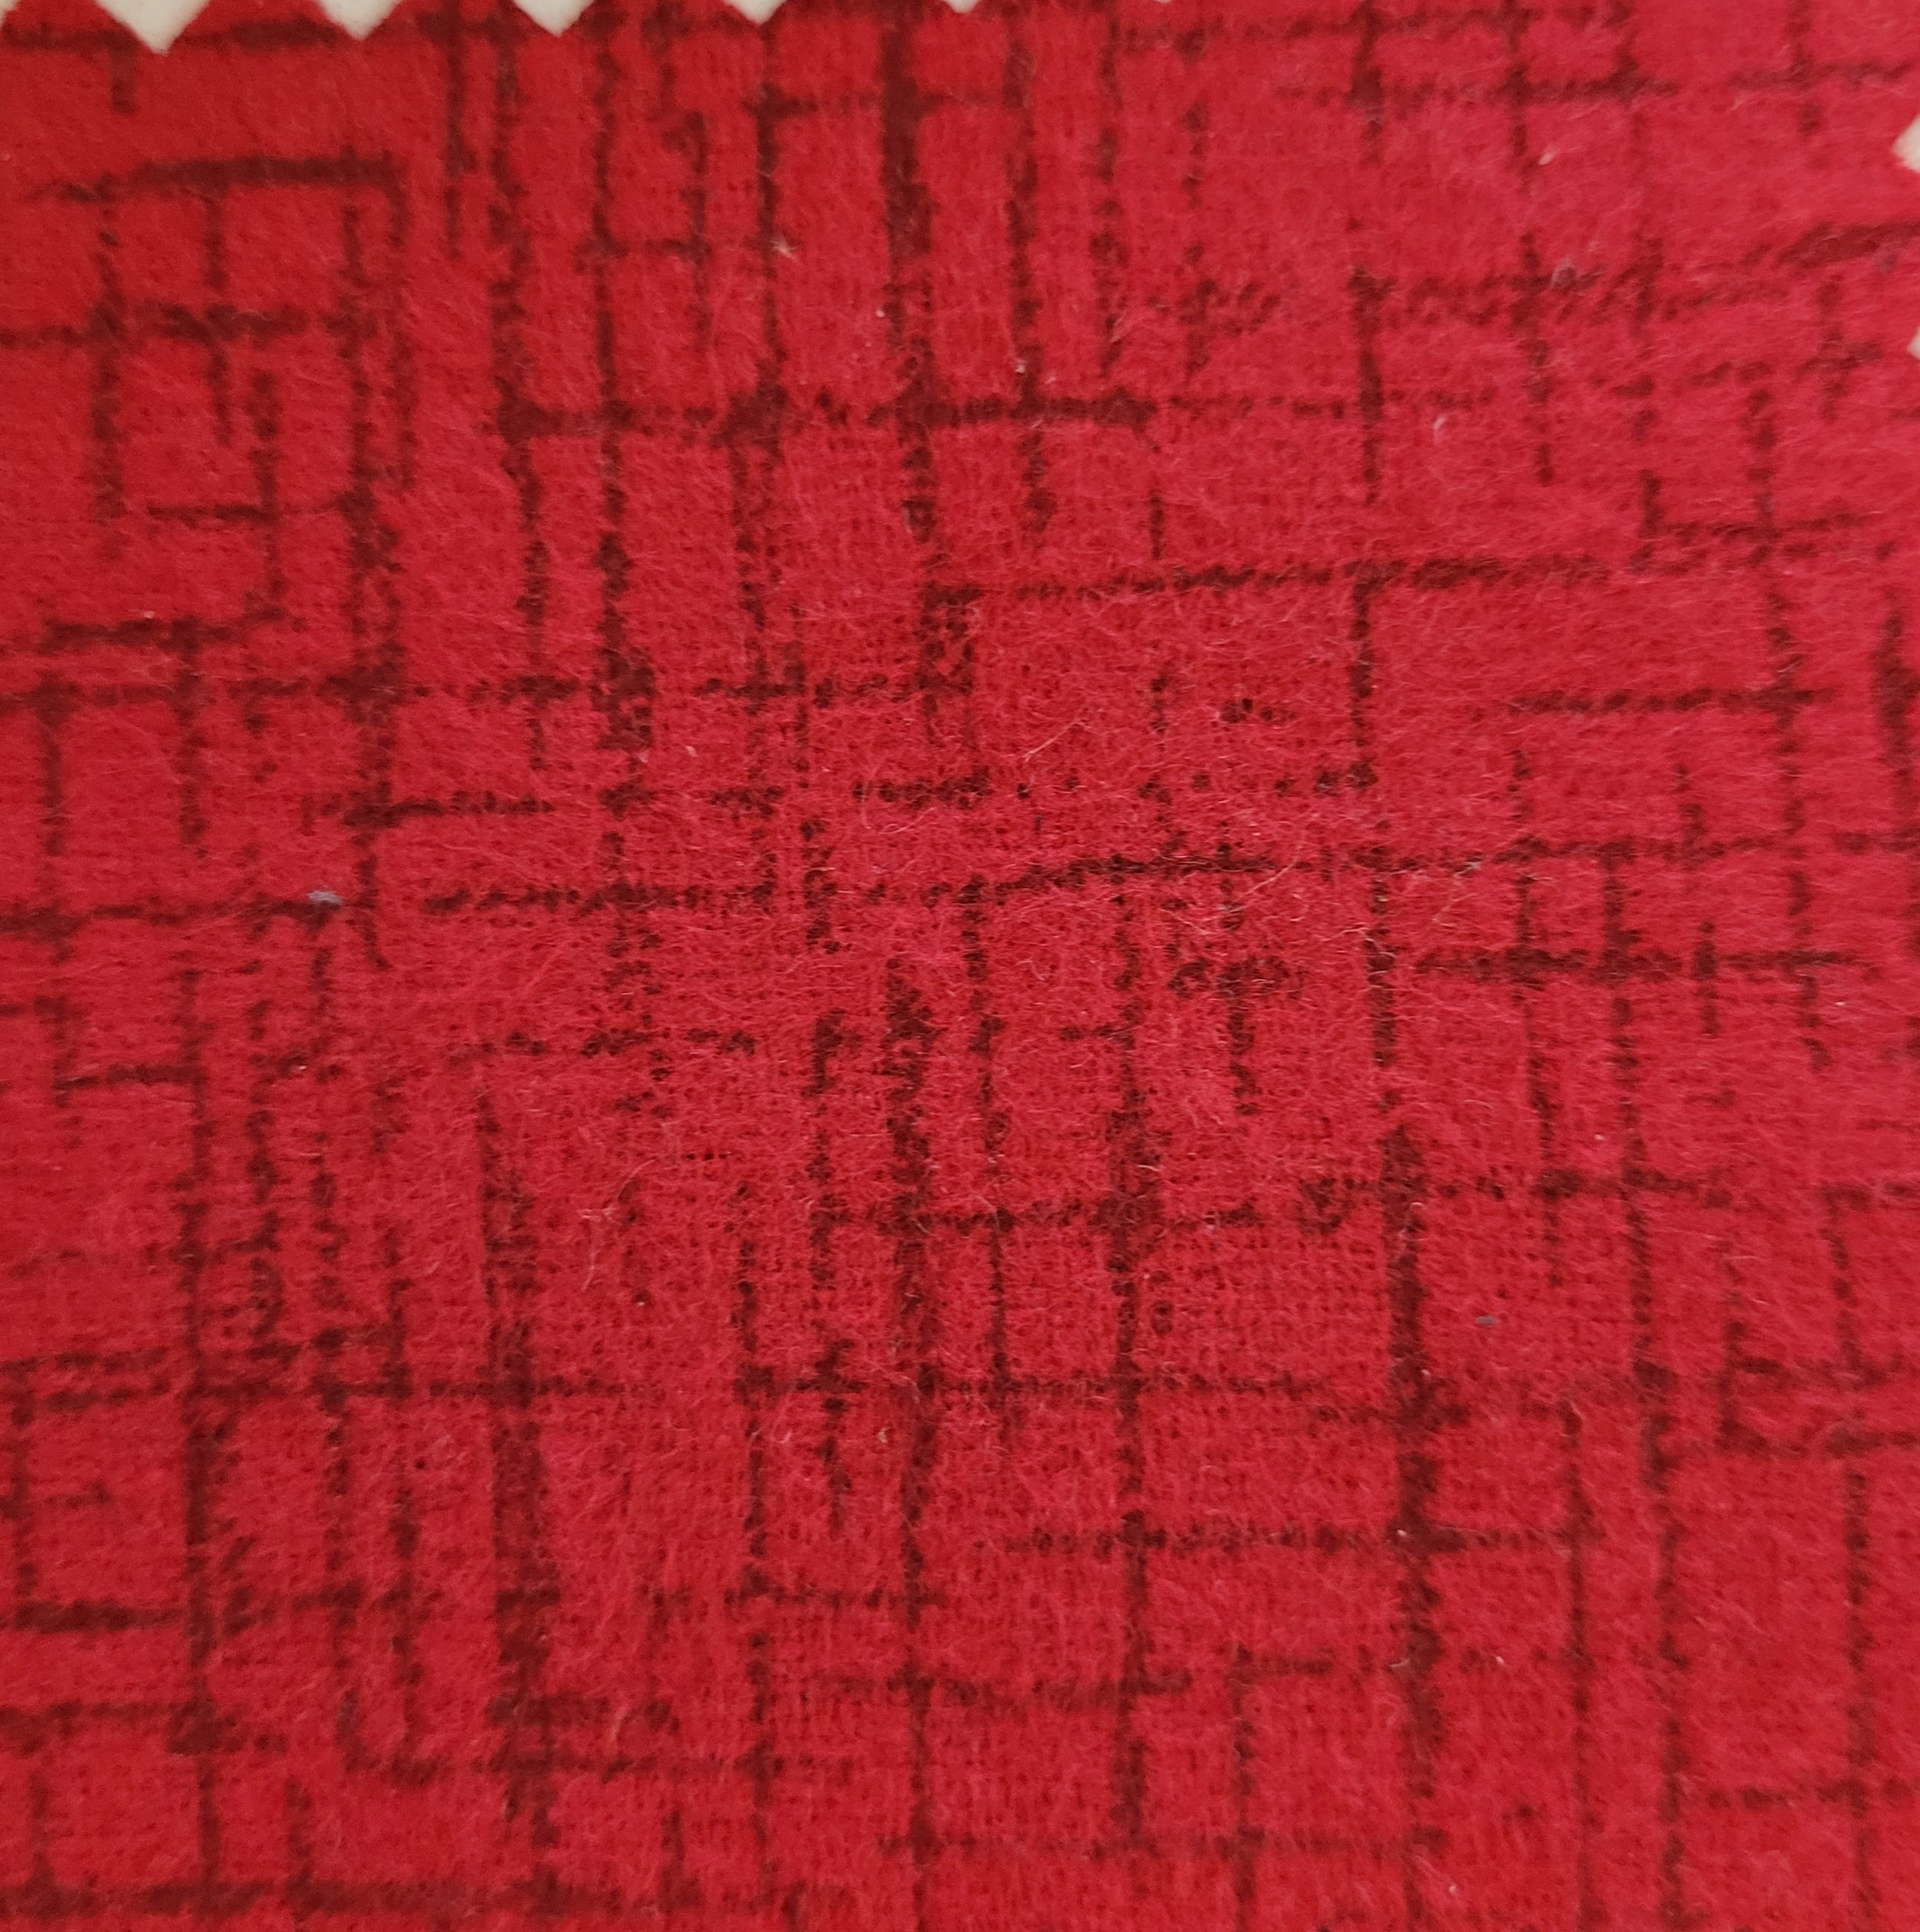 Betula Cotton flannel 110x98 - Red